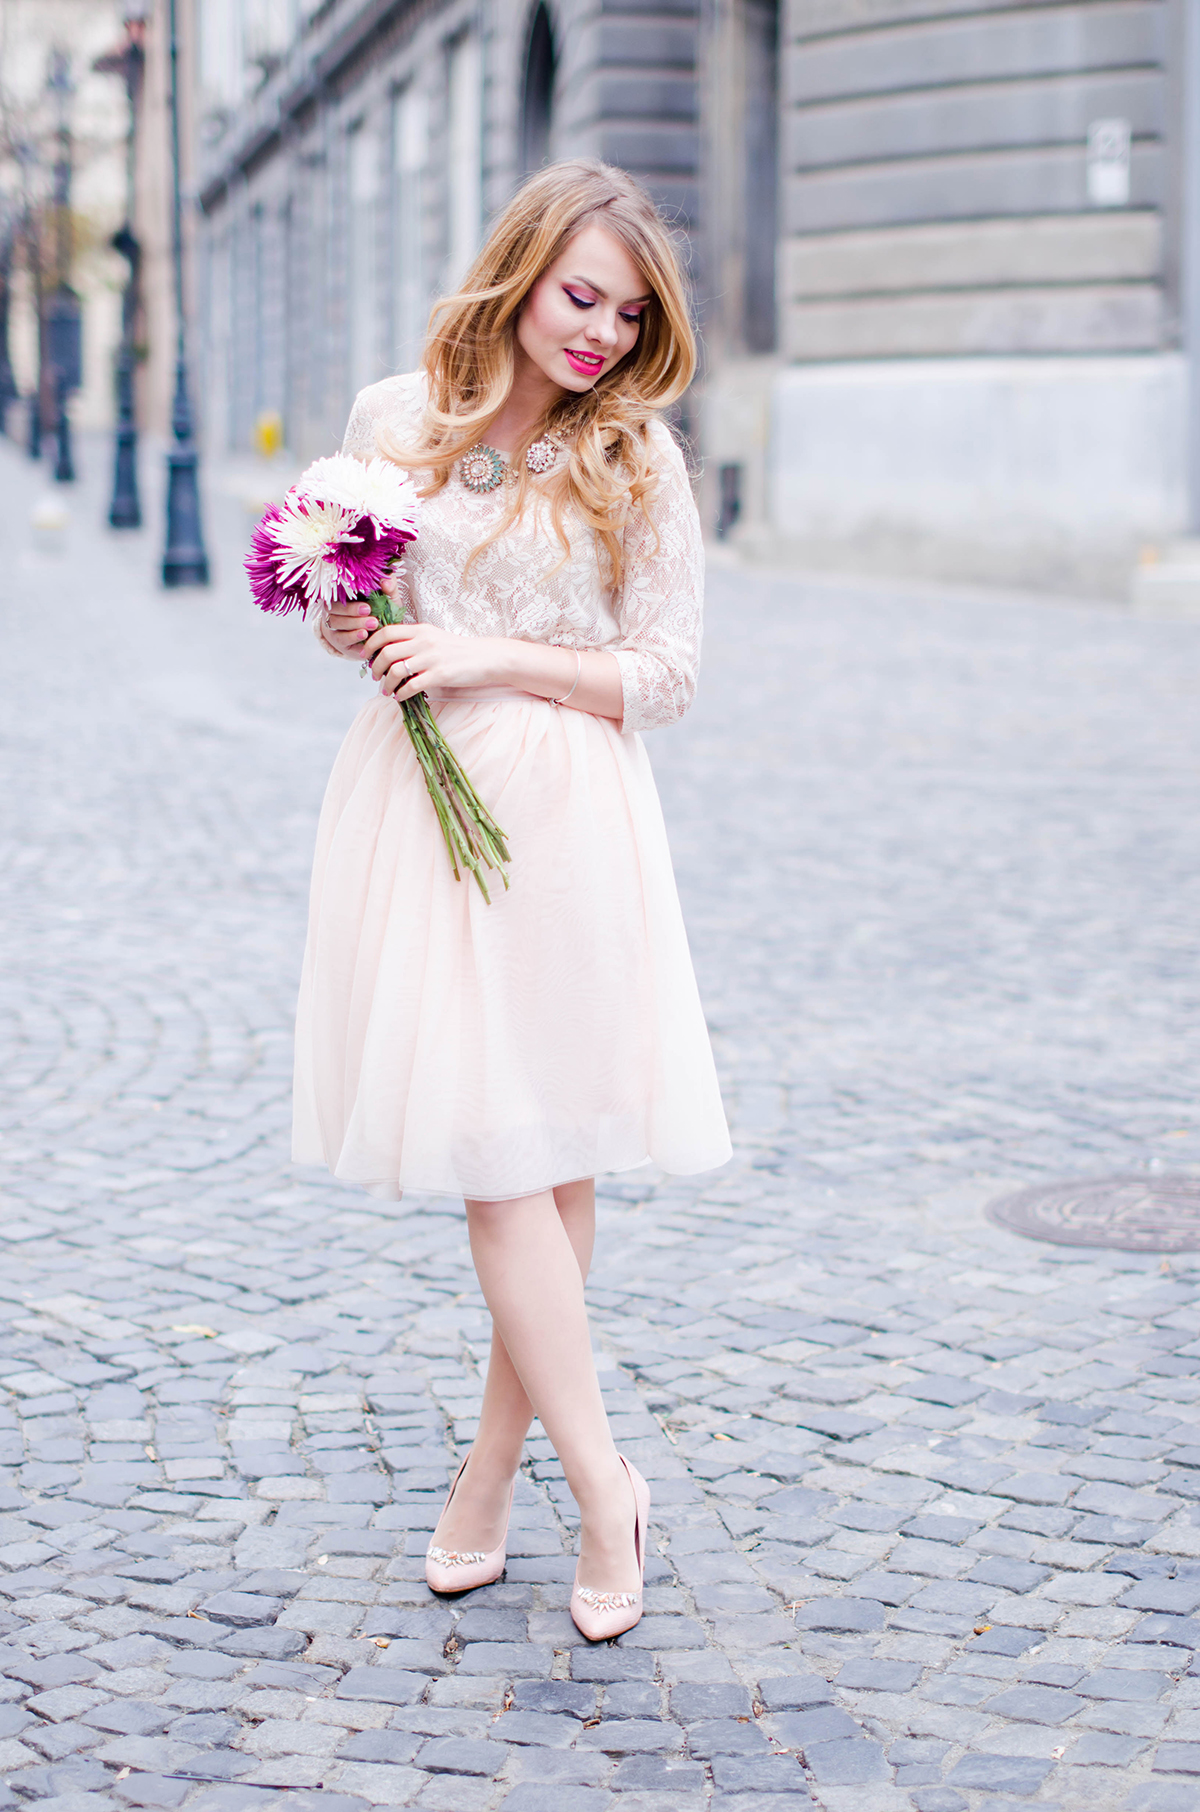 pastel-pink-tulle-skirt-lace-blouse-pink-flowers-feminine-outfit-embellished-pink-heels (1)